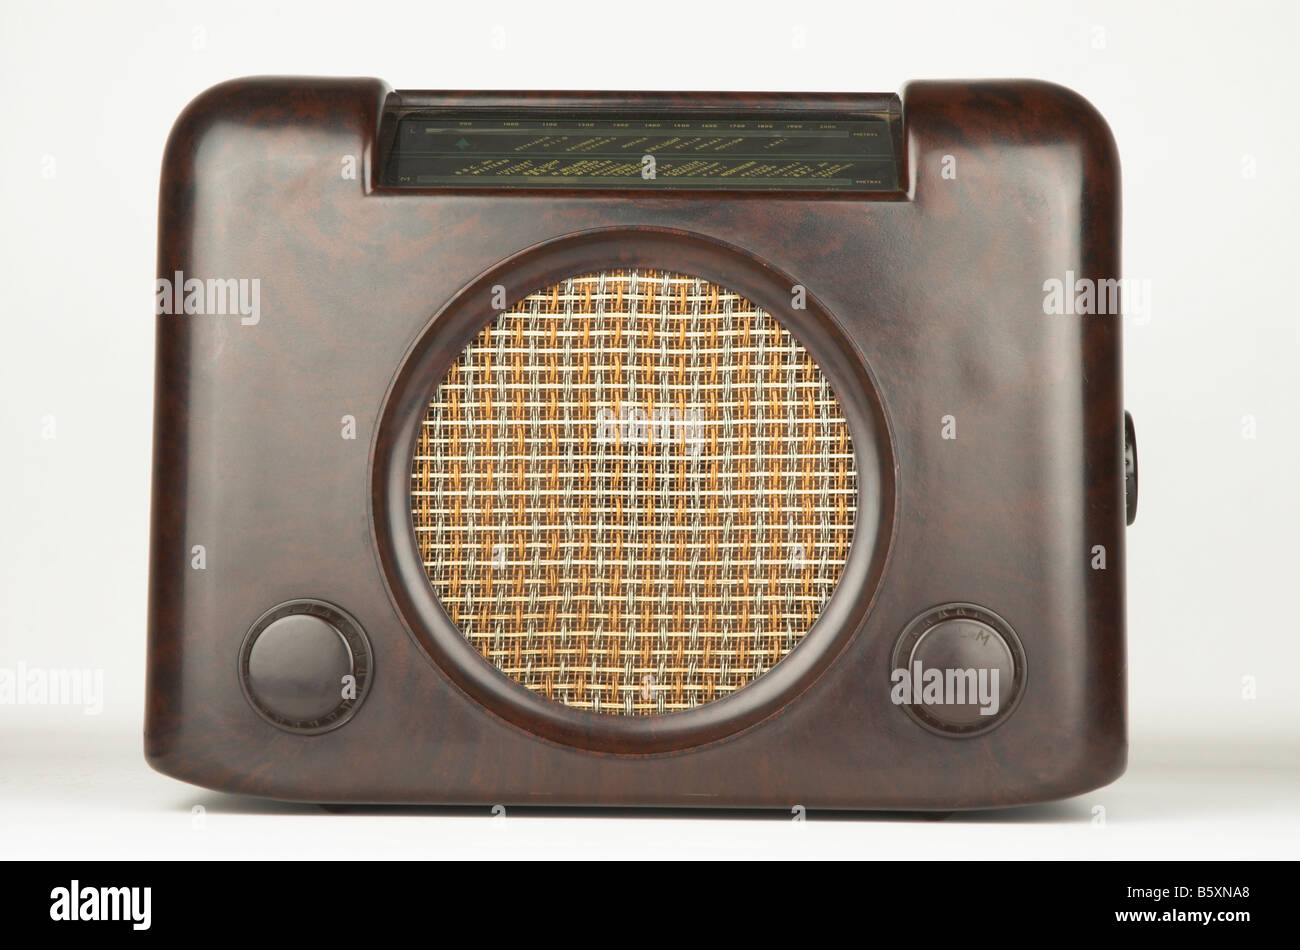 Antique Bakelite Bush DAC90 brown radio 1940's - Stock Image